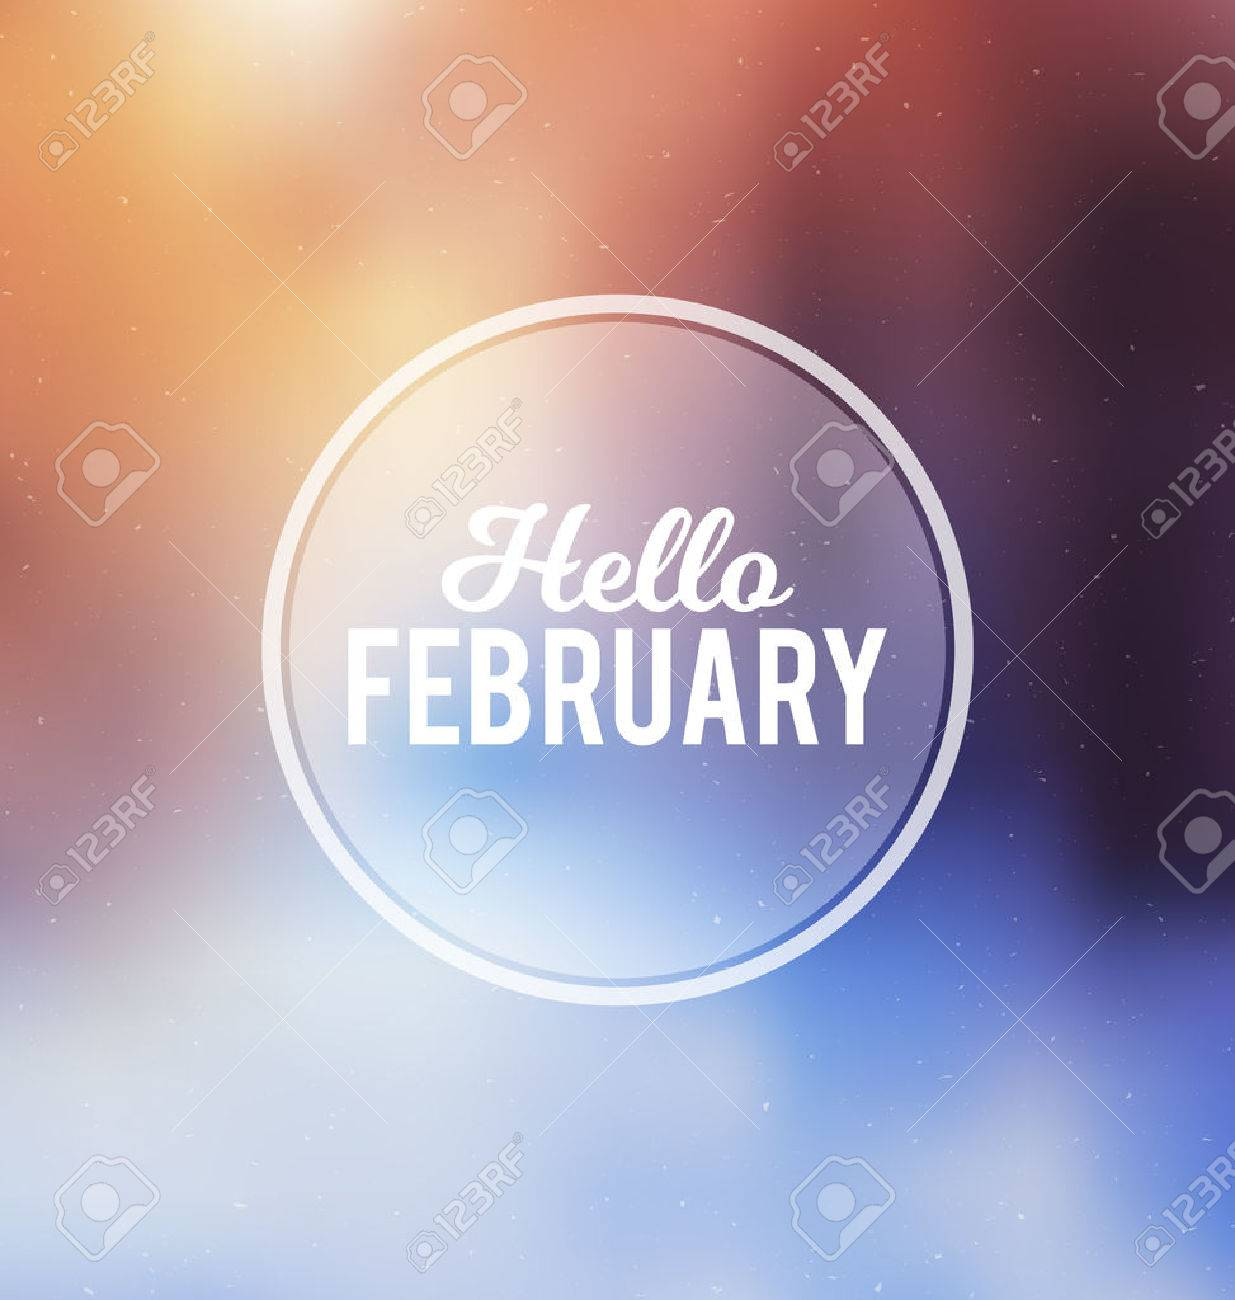 Hello February - Typographic Greeting Card Design Concept - Colorful Blurred Background with white text - 45168103